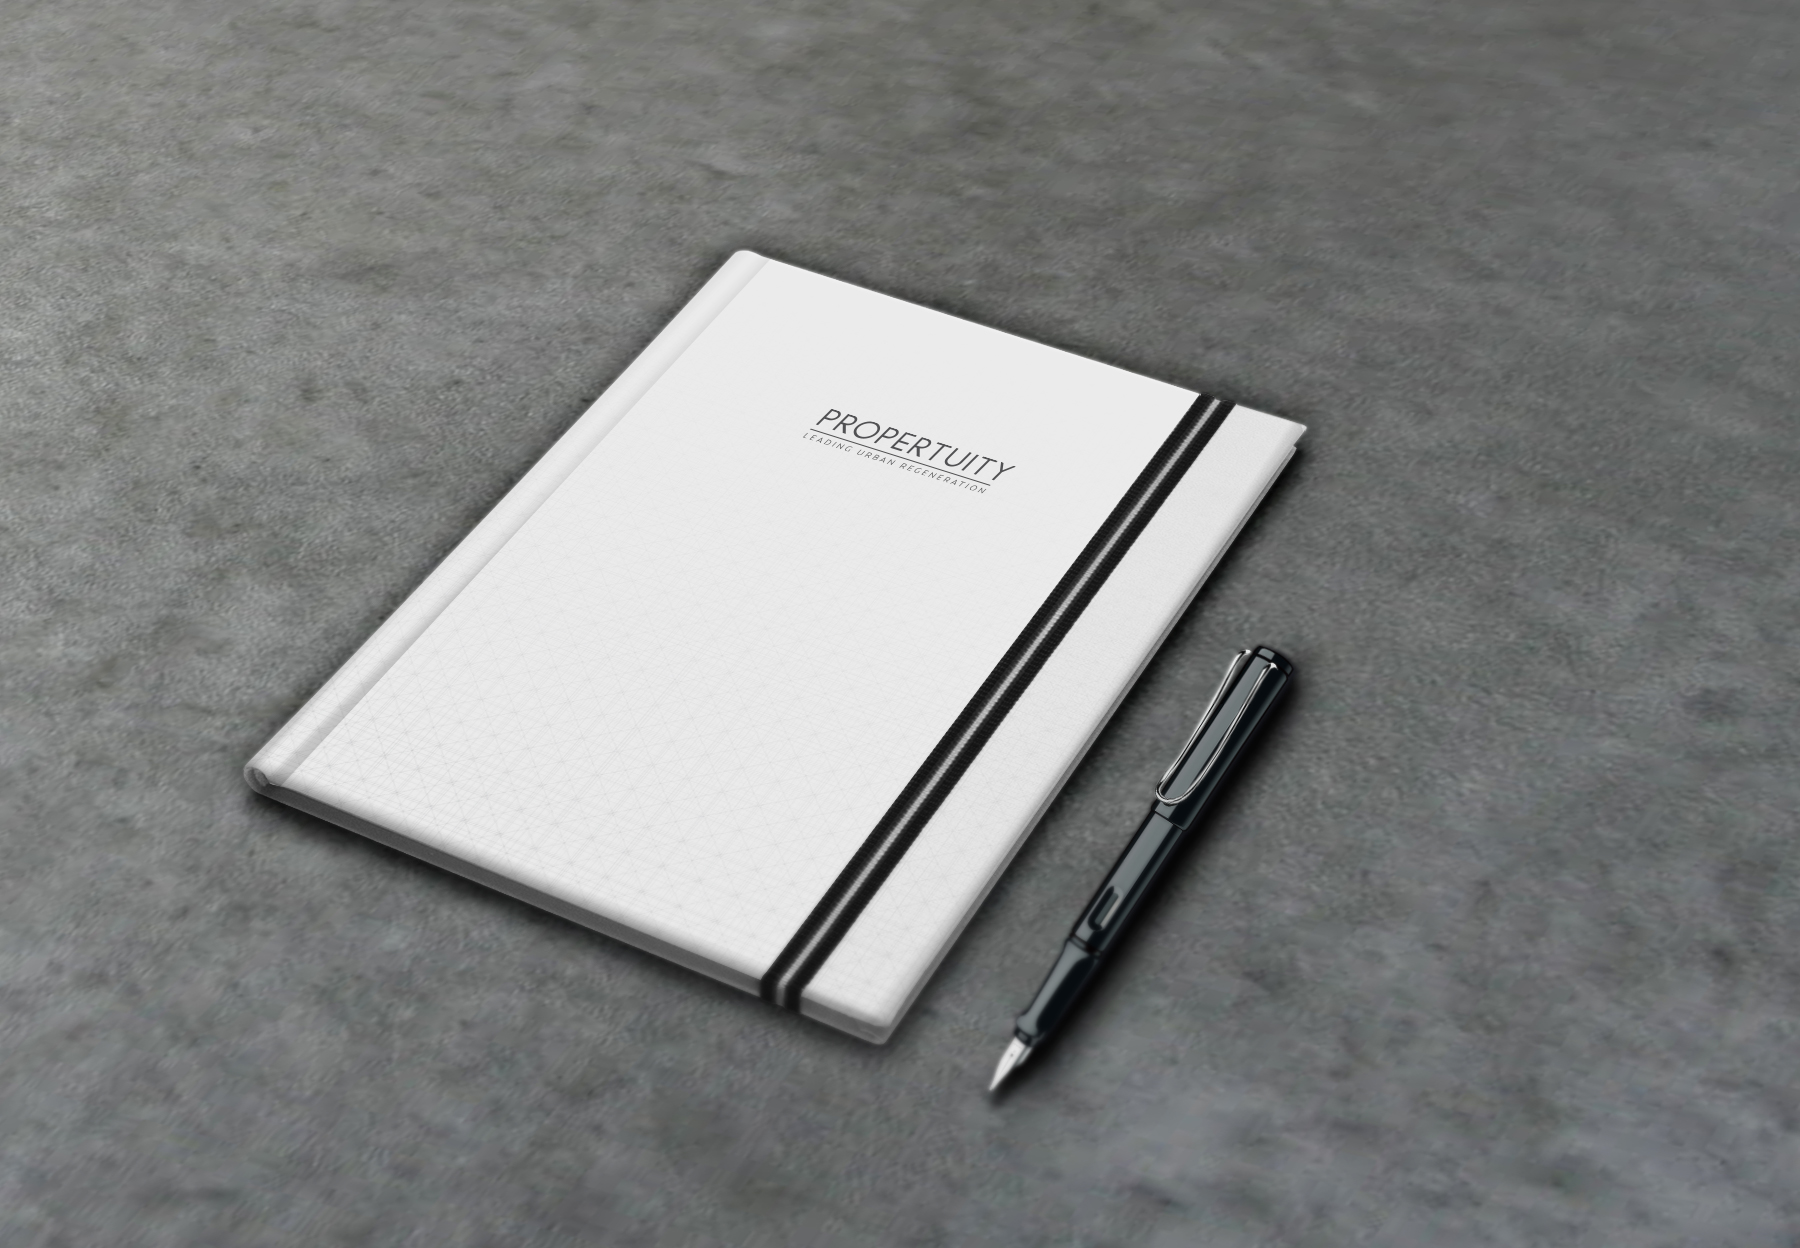 propertuity-_NOTE-BOOK-and-pen